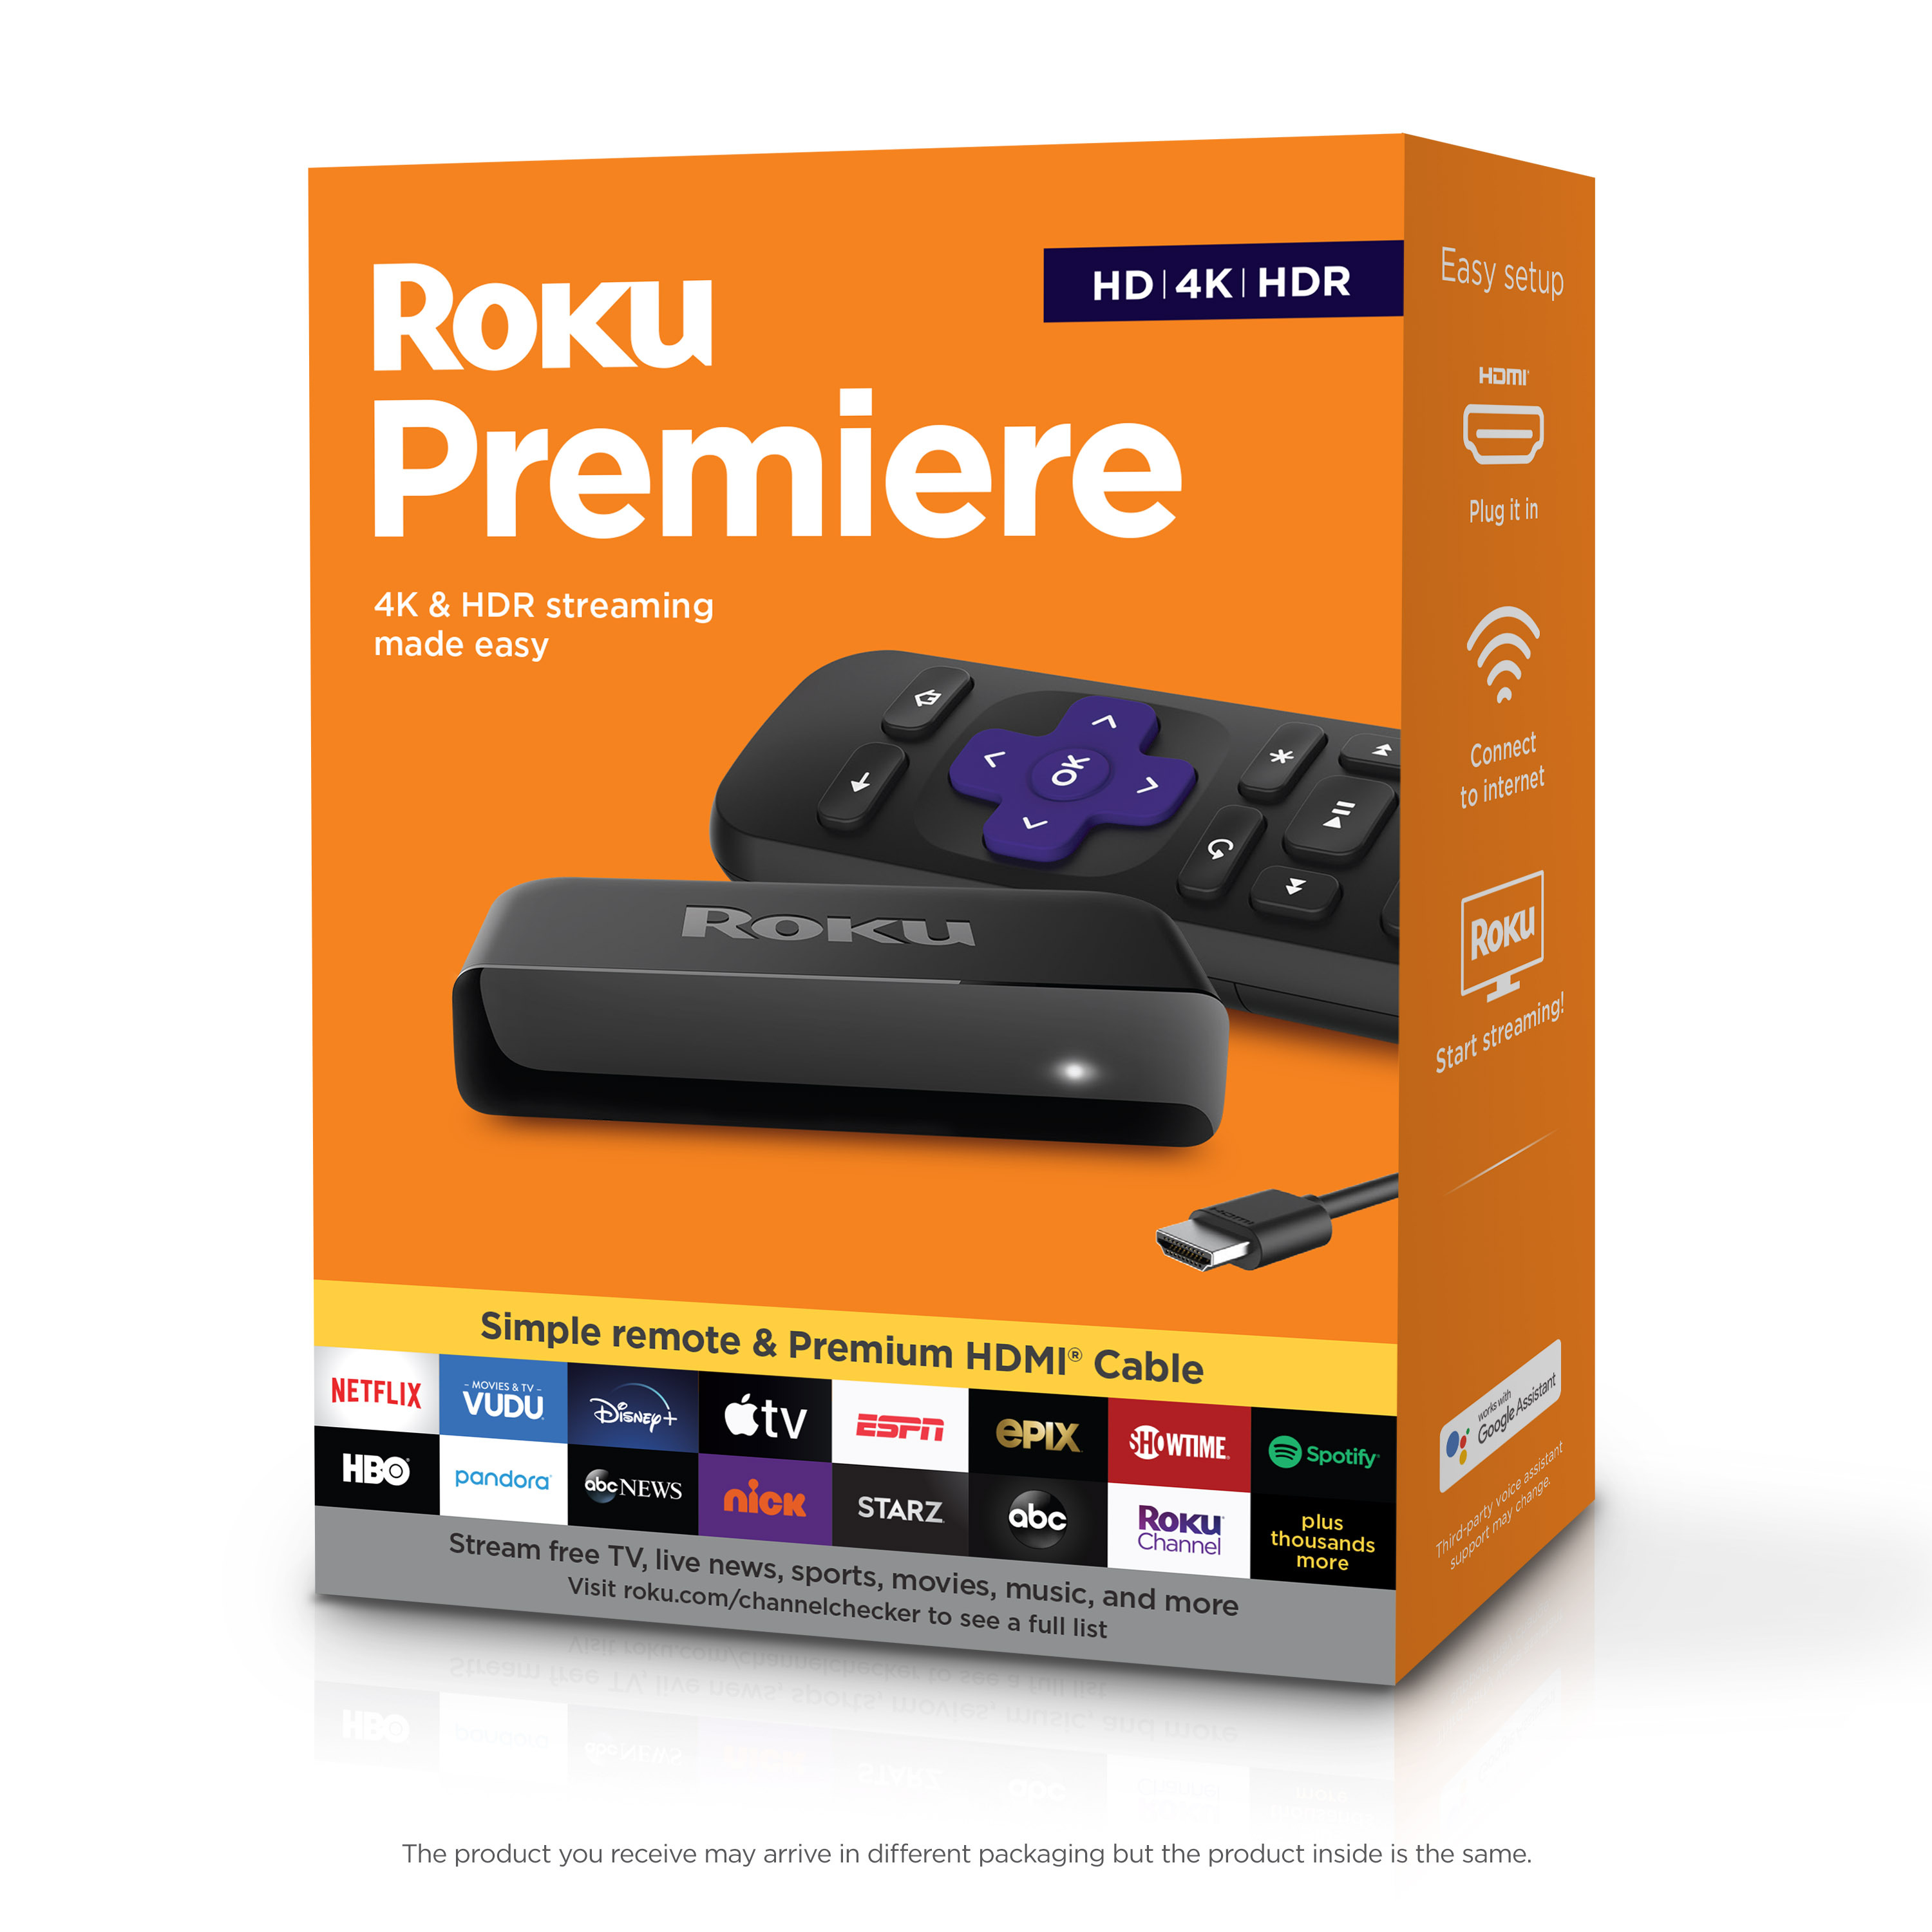 Roku Premiere HD/4K/HDR Streaming Media Player